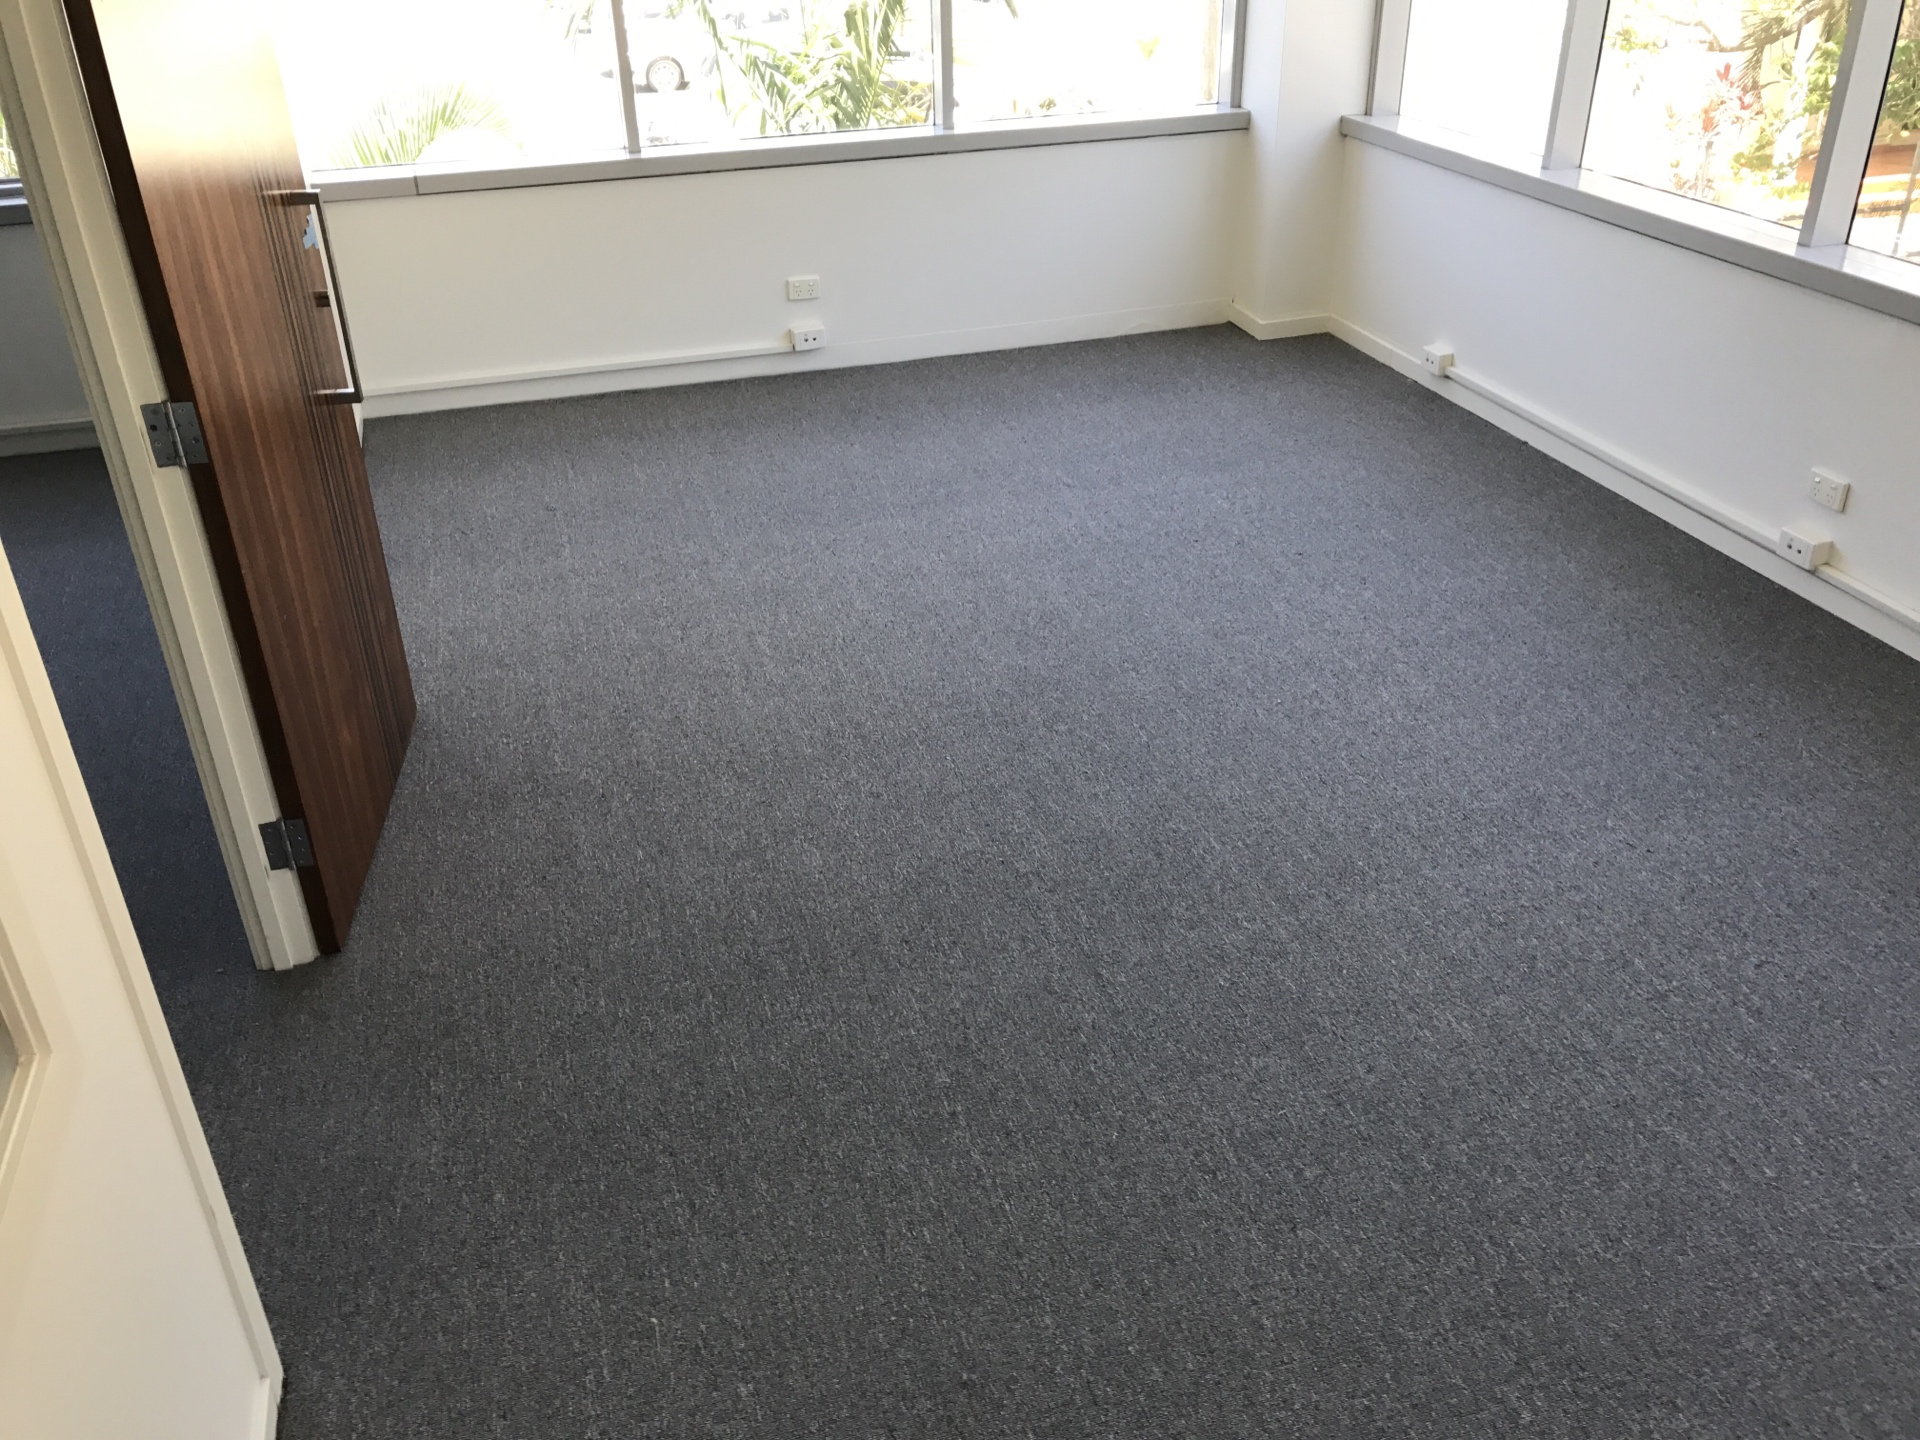 Rental carpet option new carpet installation gold coast for Best wearing carpet for high traffic areas